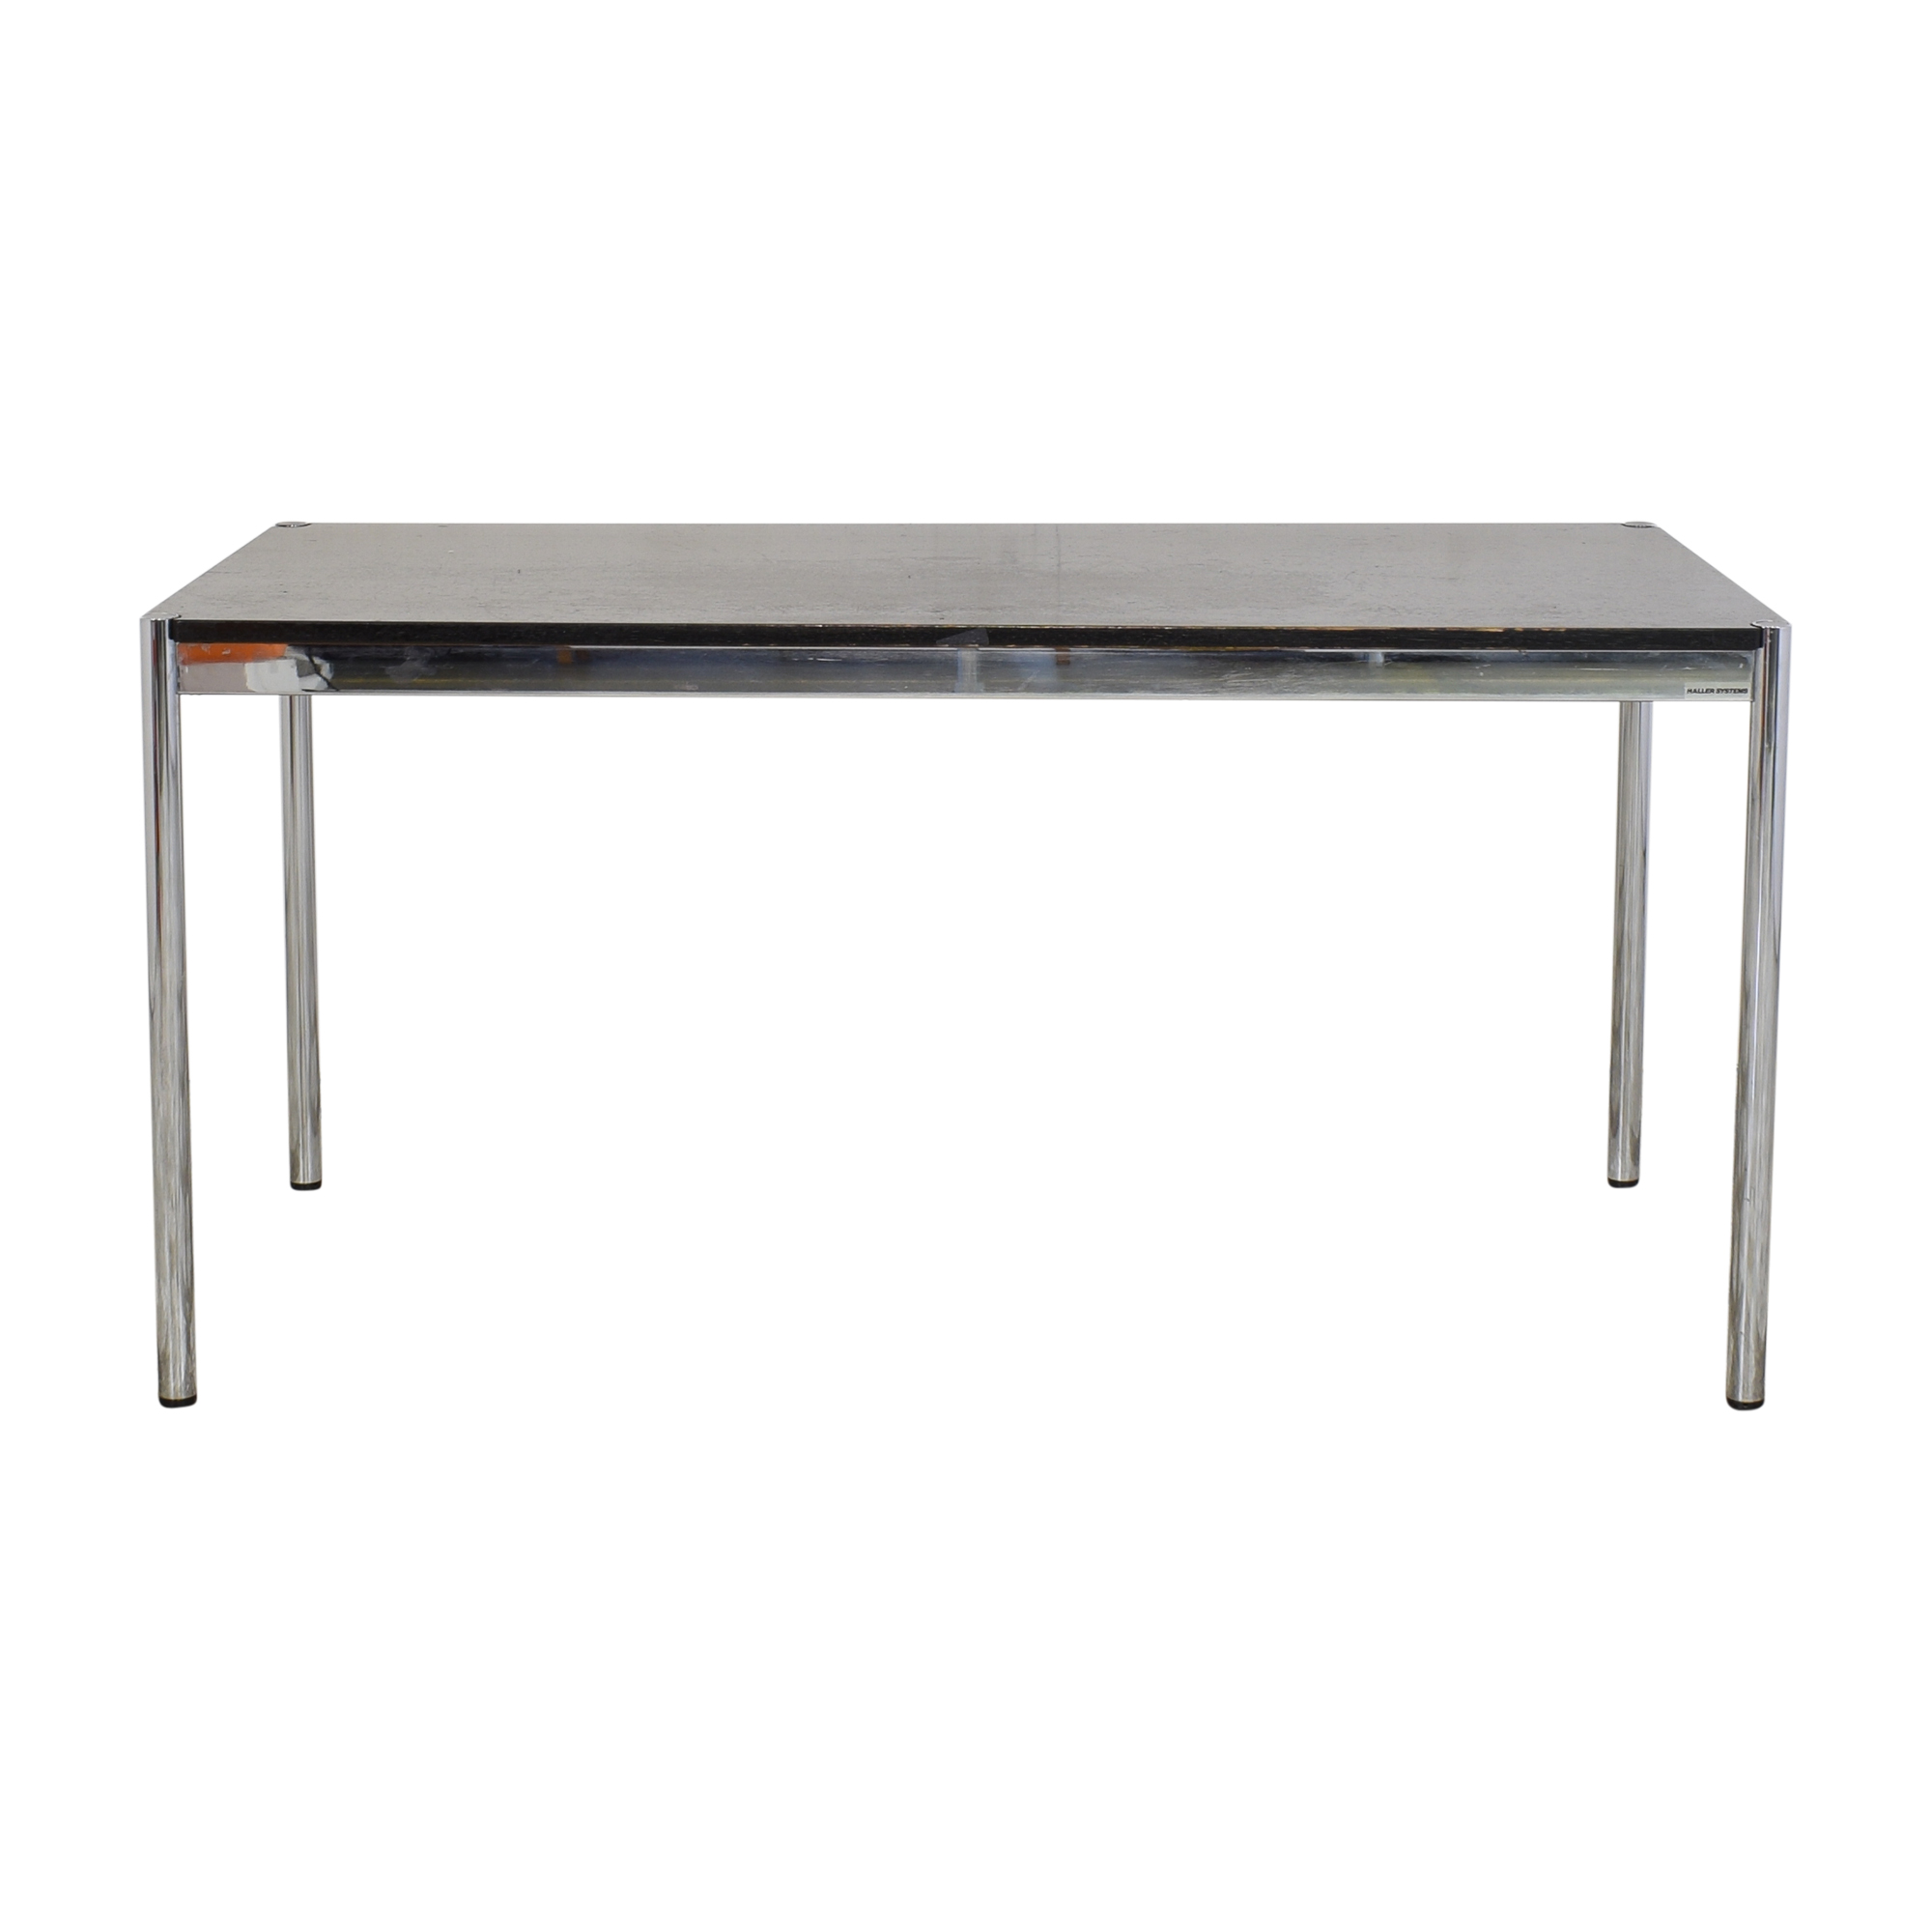 USM Haller Modern Table sale